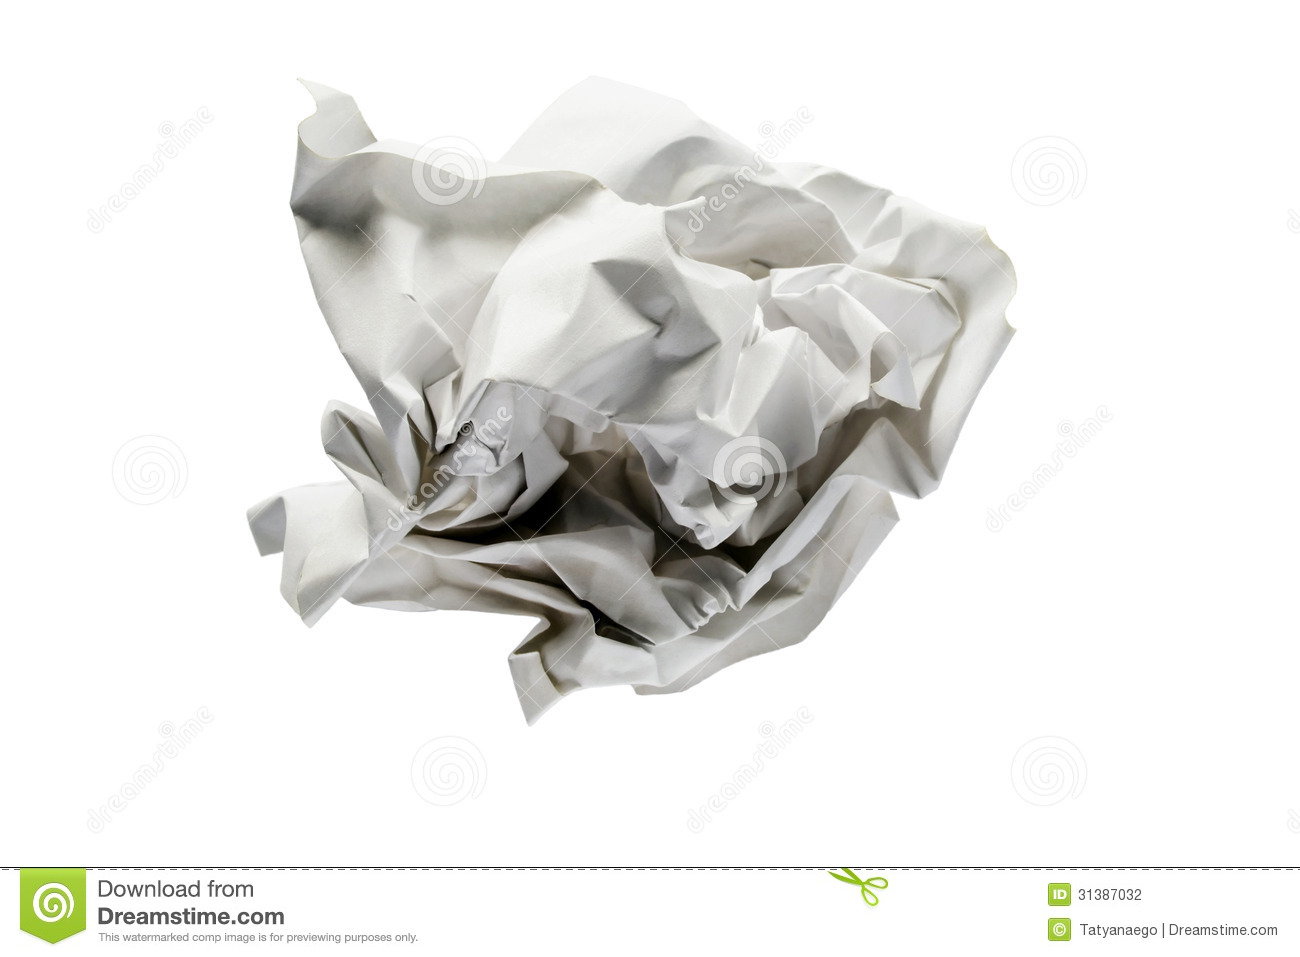 crumpled paper stock photo. image of geometry, abstract - 31387032